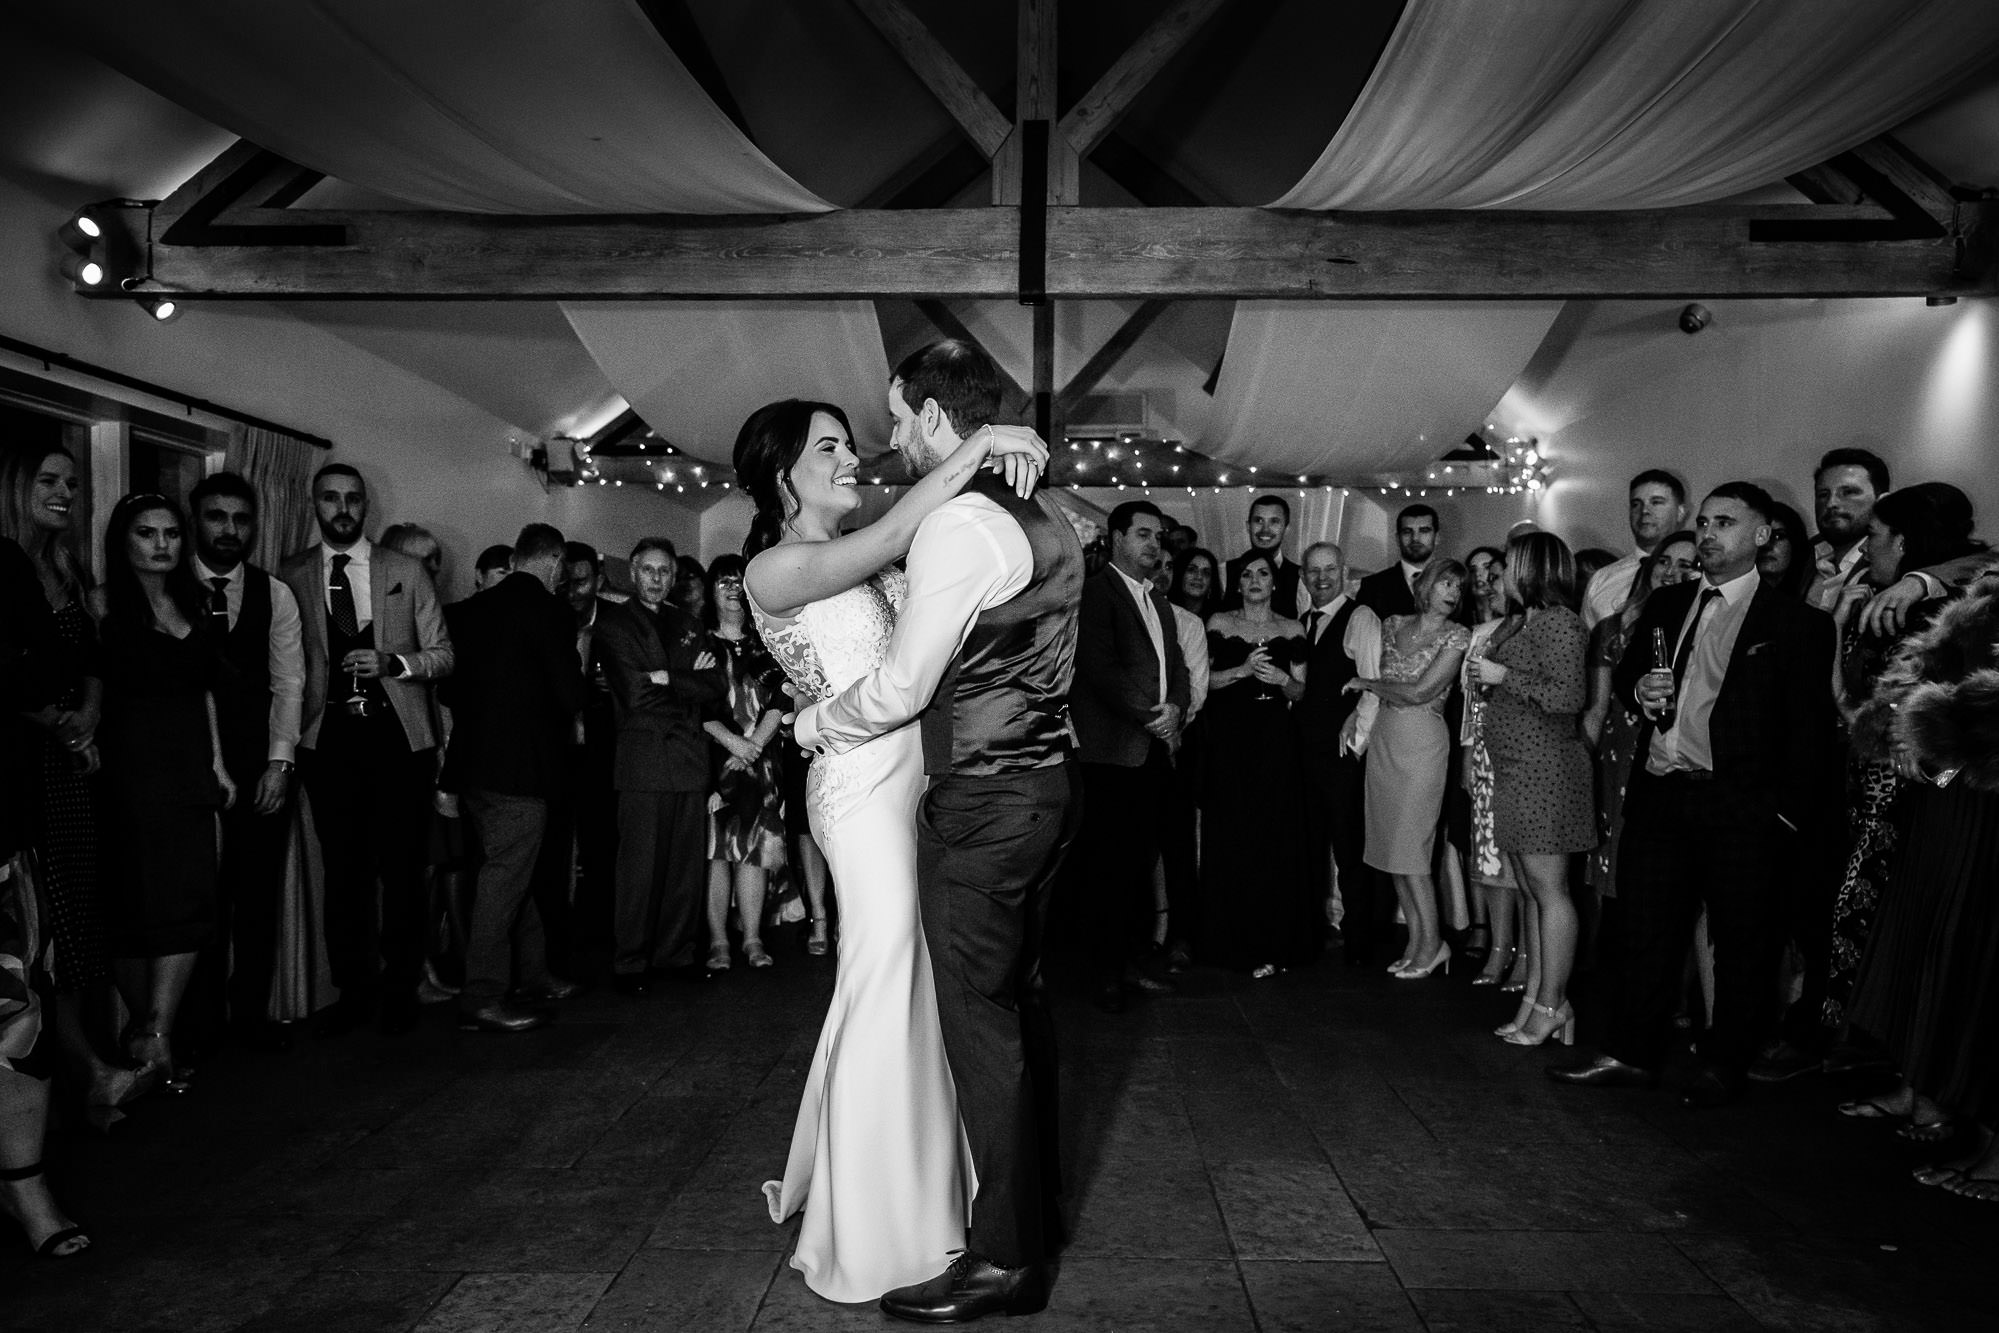 First Dance - Farbridge Wedding